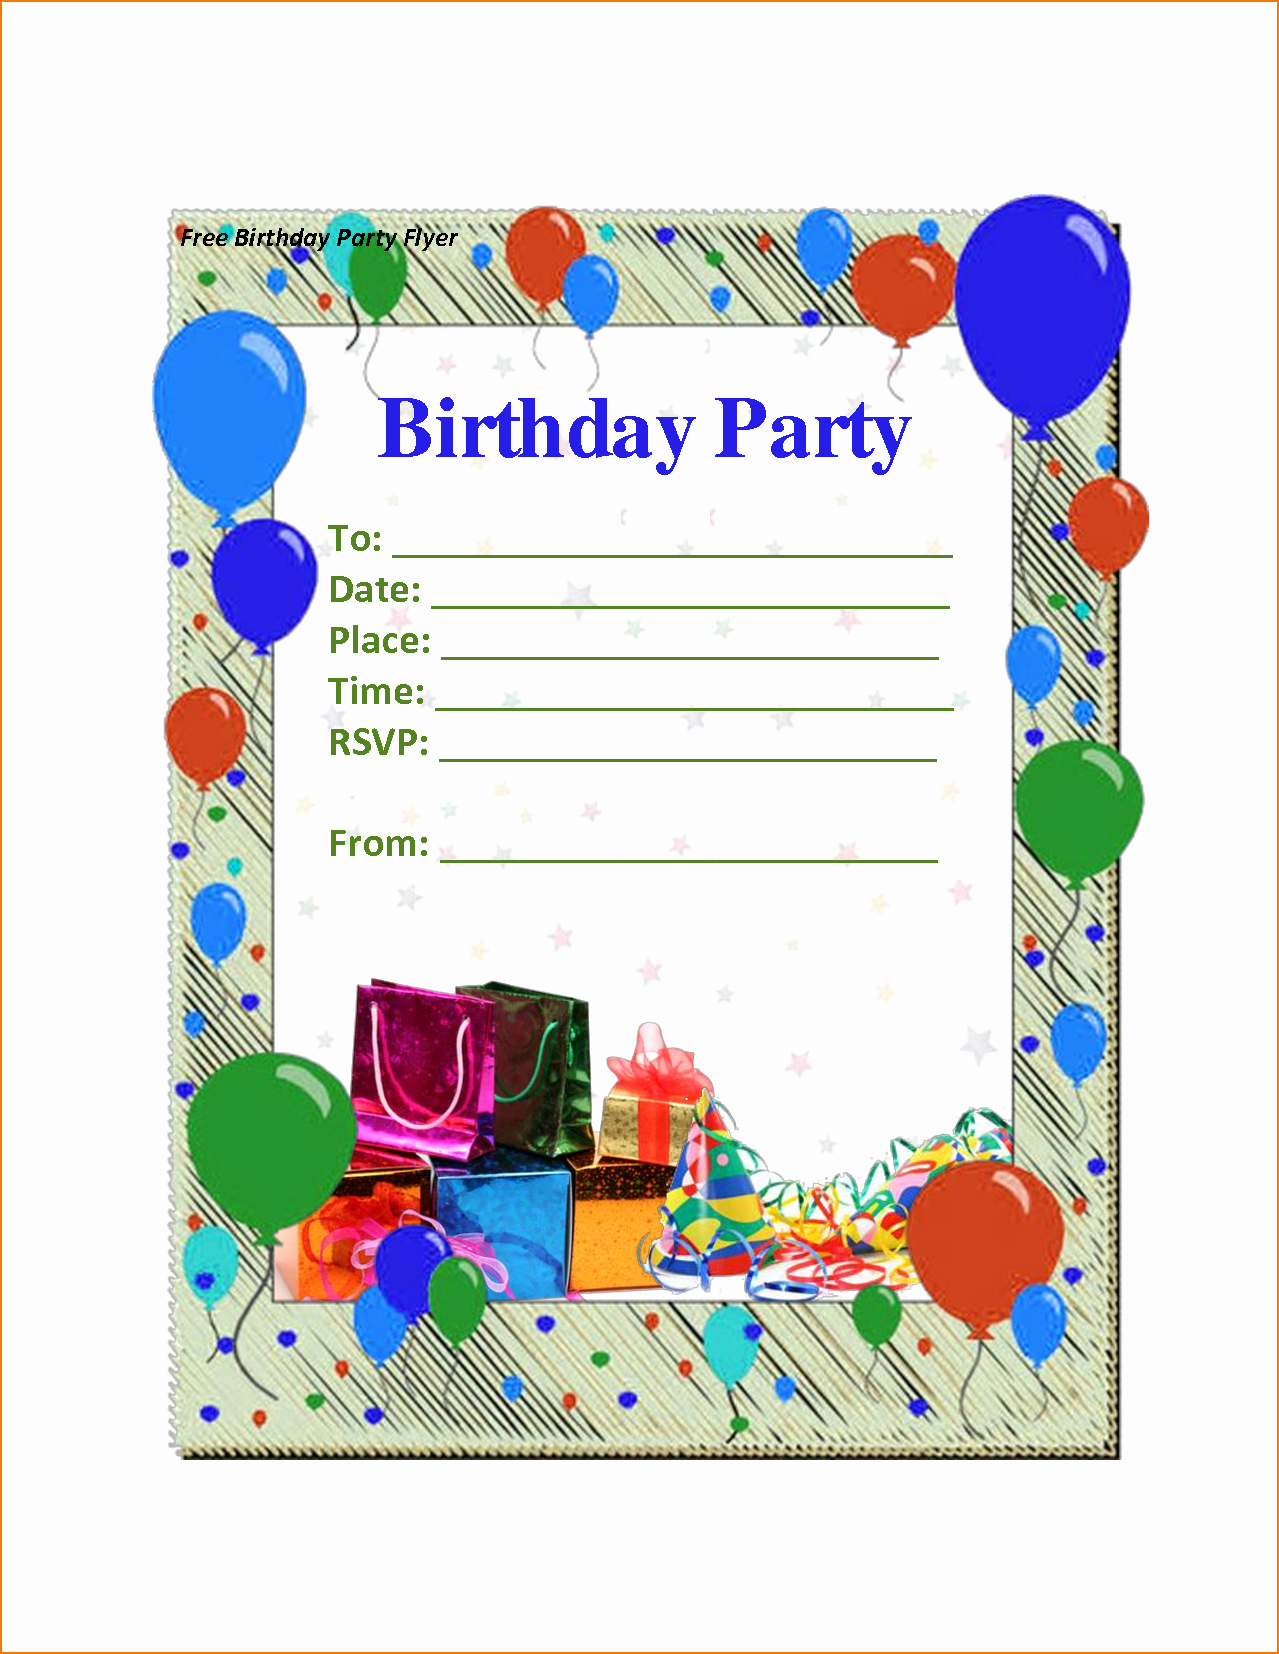 Word Party Invite Template Elegant 6 Birthday Party Invitation Template Word